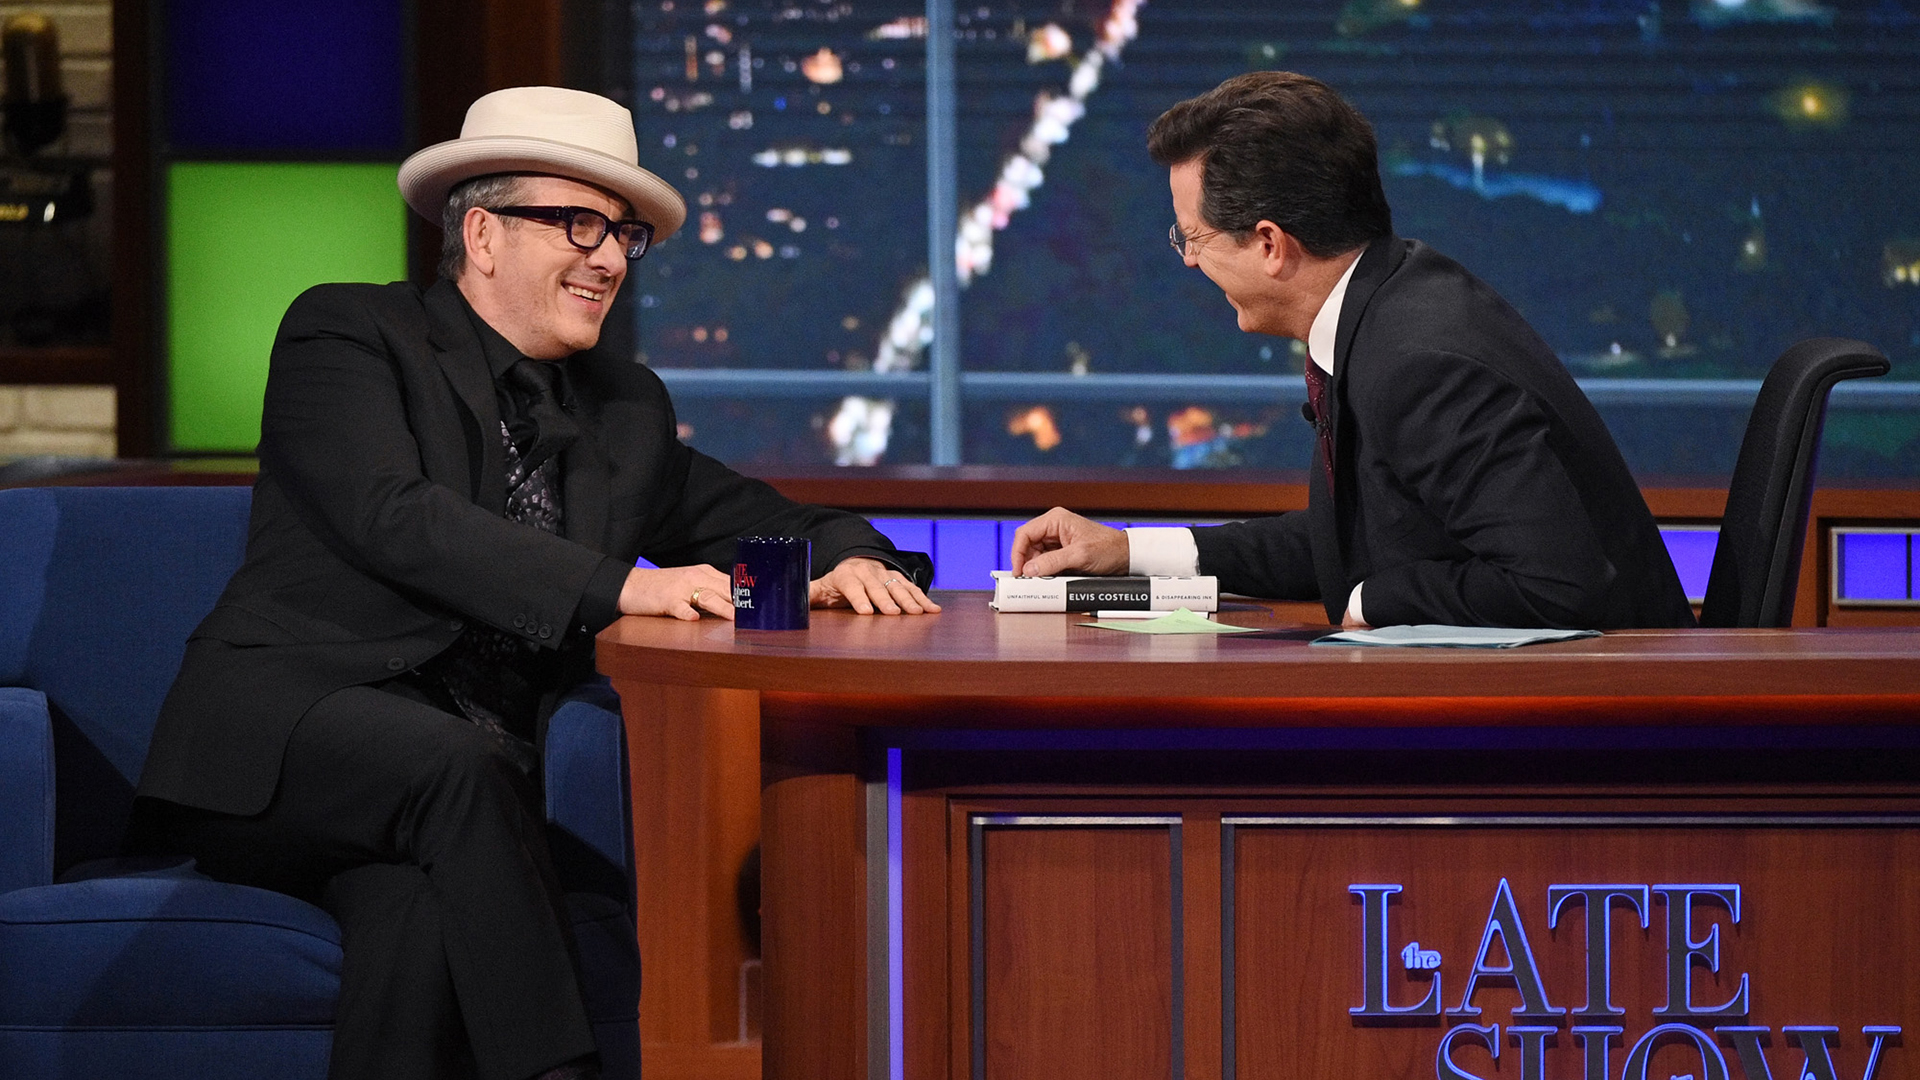 Elvis Costello and Stephen Colbert